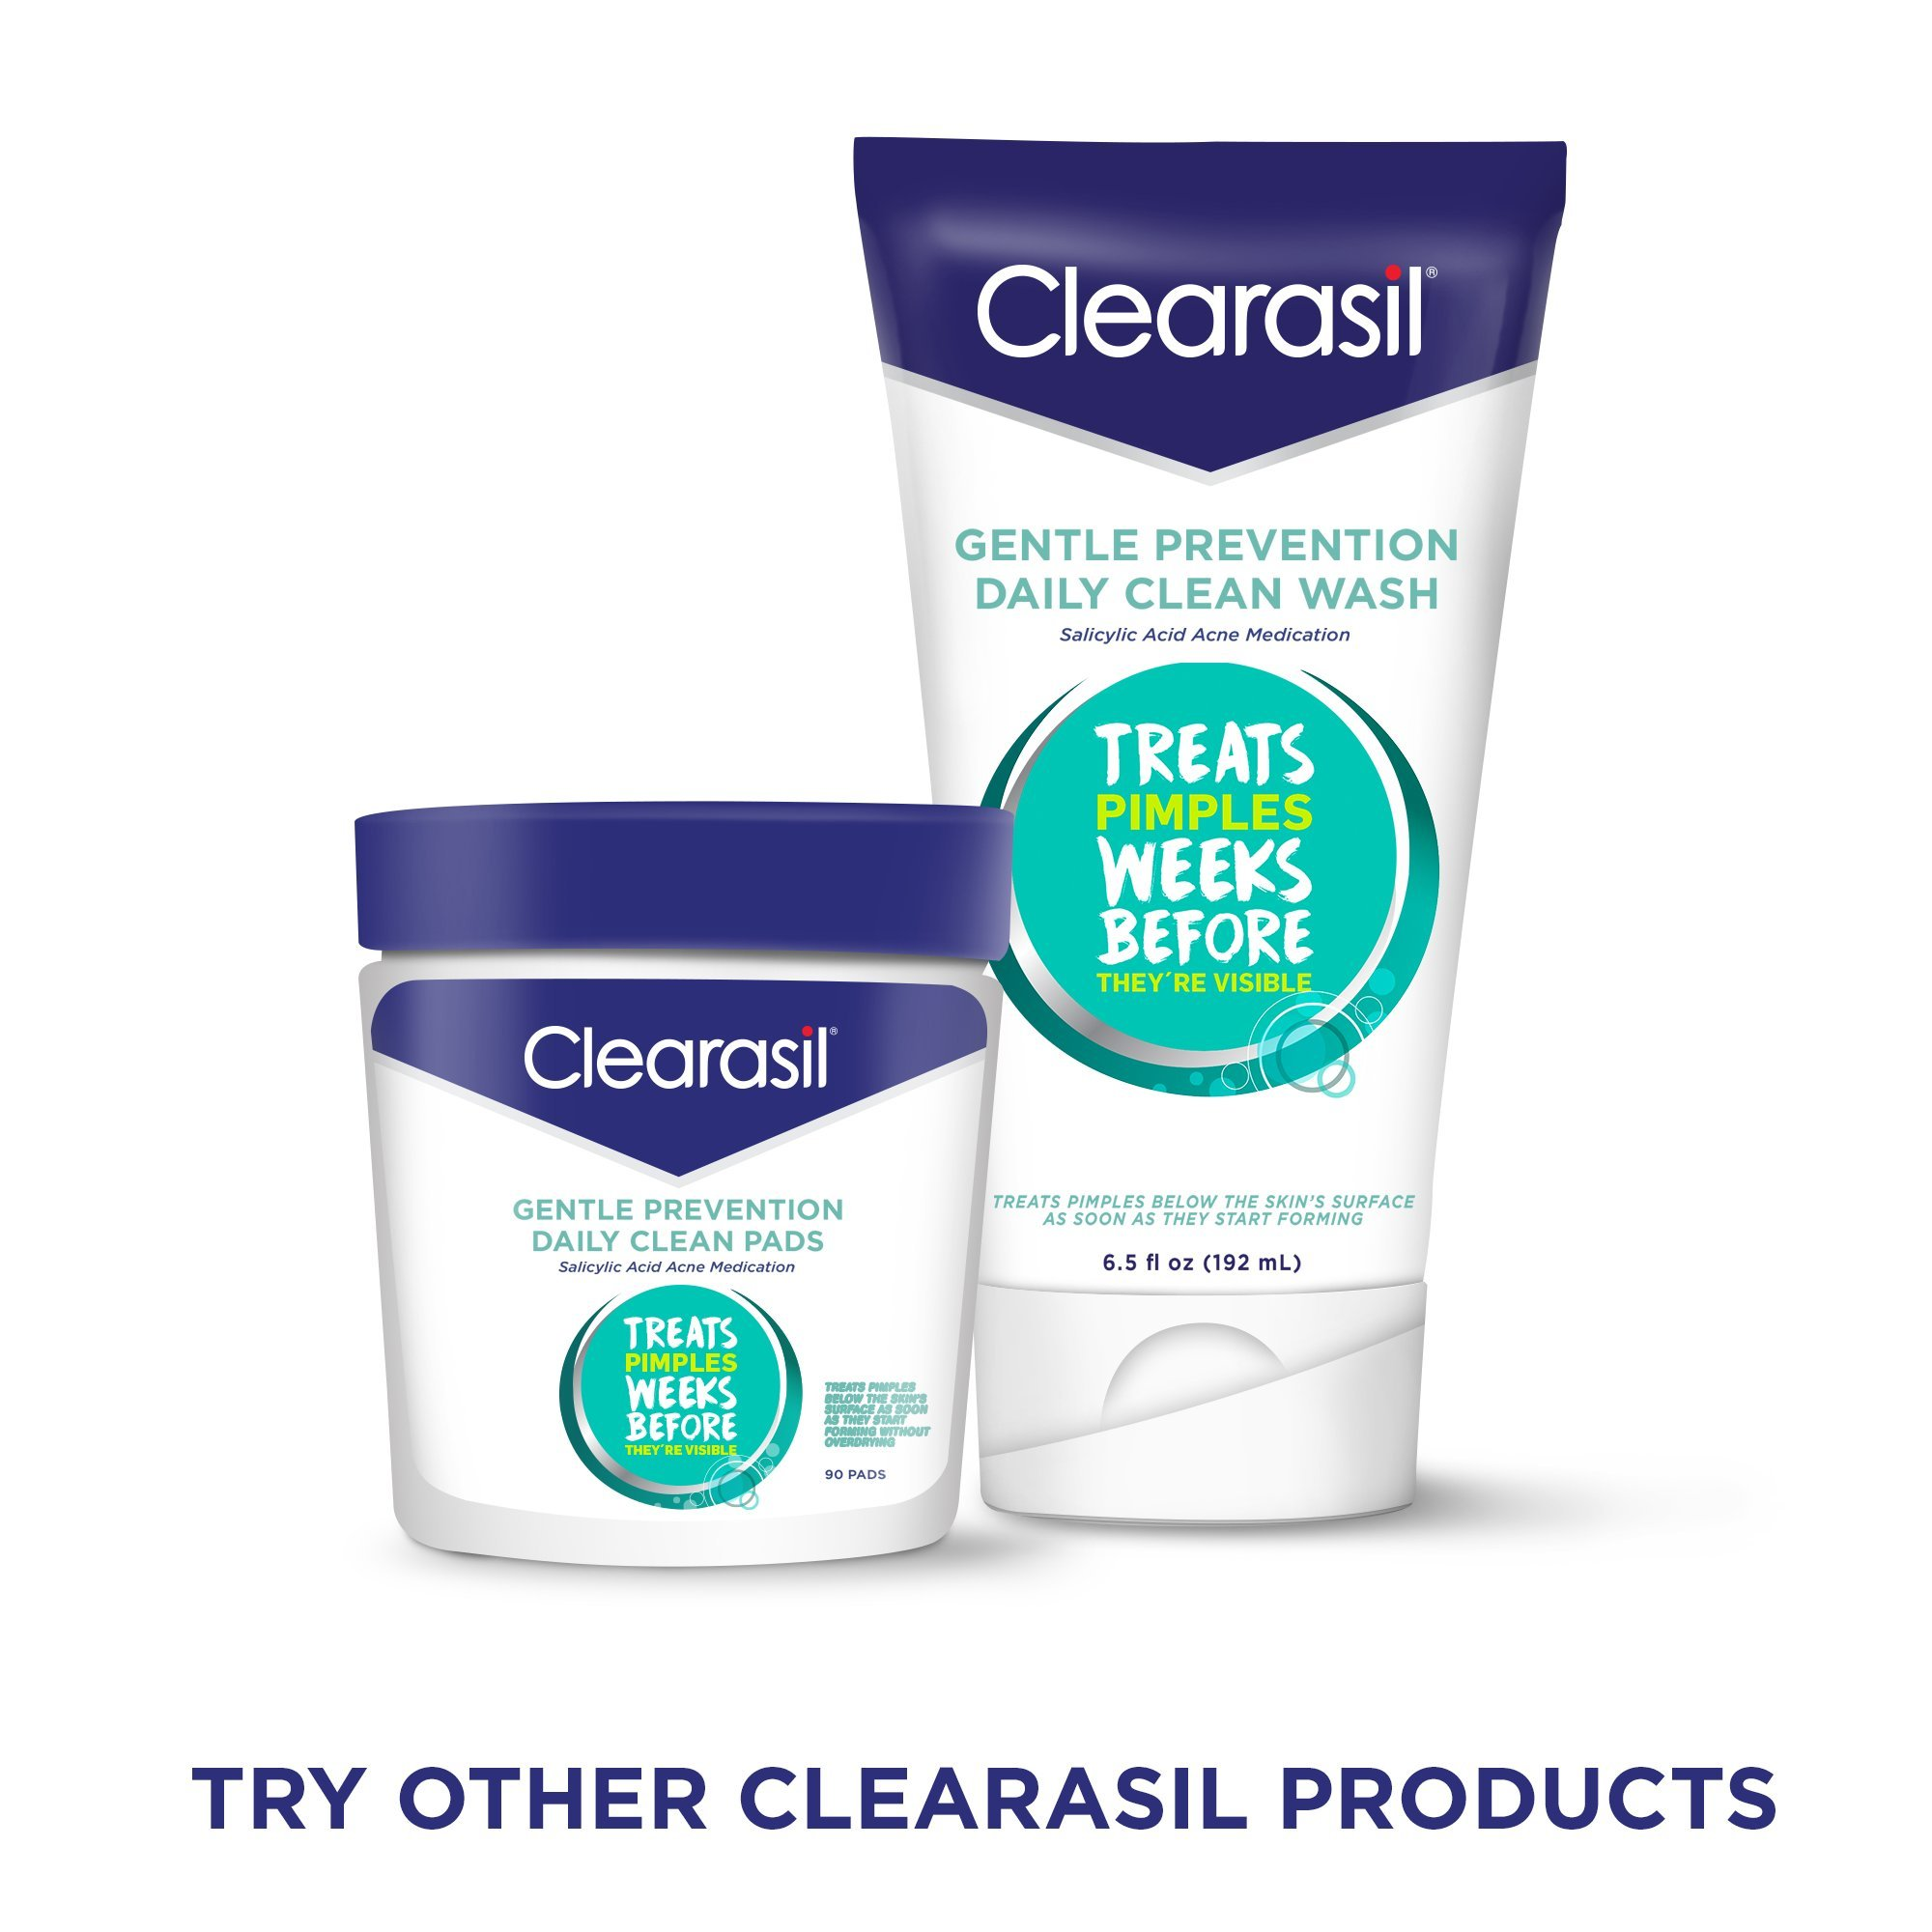 Clearasil Ultra Rapid Action Facial Cleansing Pads, 90 Count by Clearasil